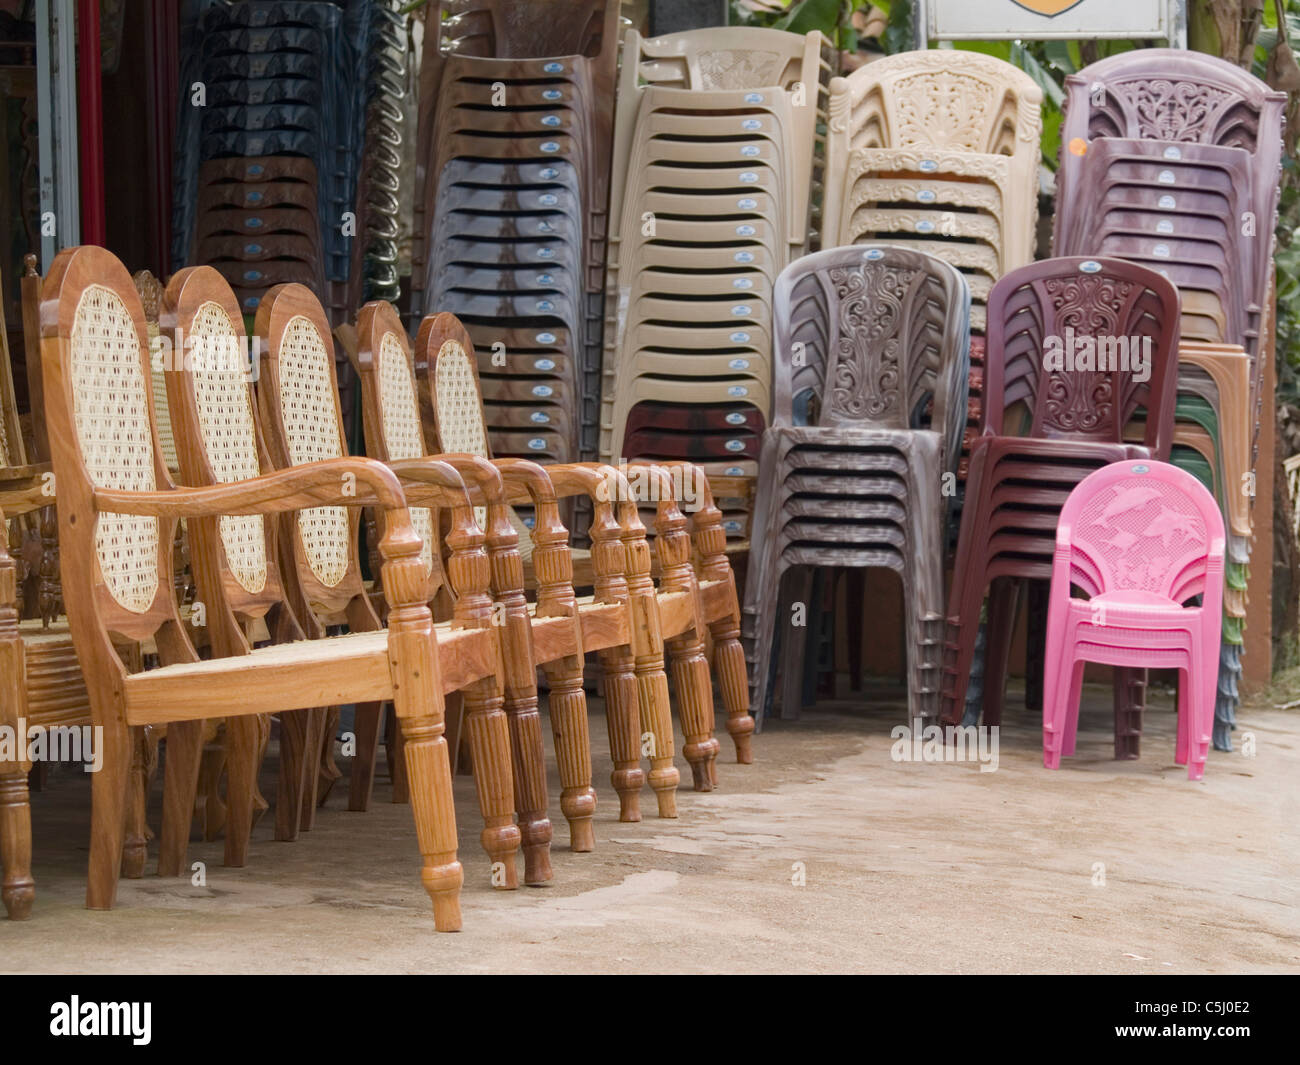 Chairs made from plastic and from local materials side by side in a shop outside matara sri lanka